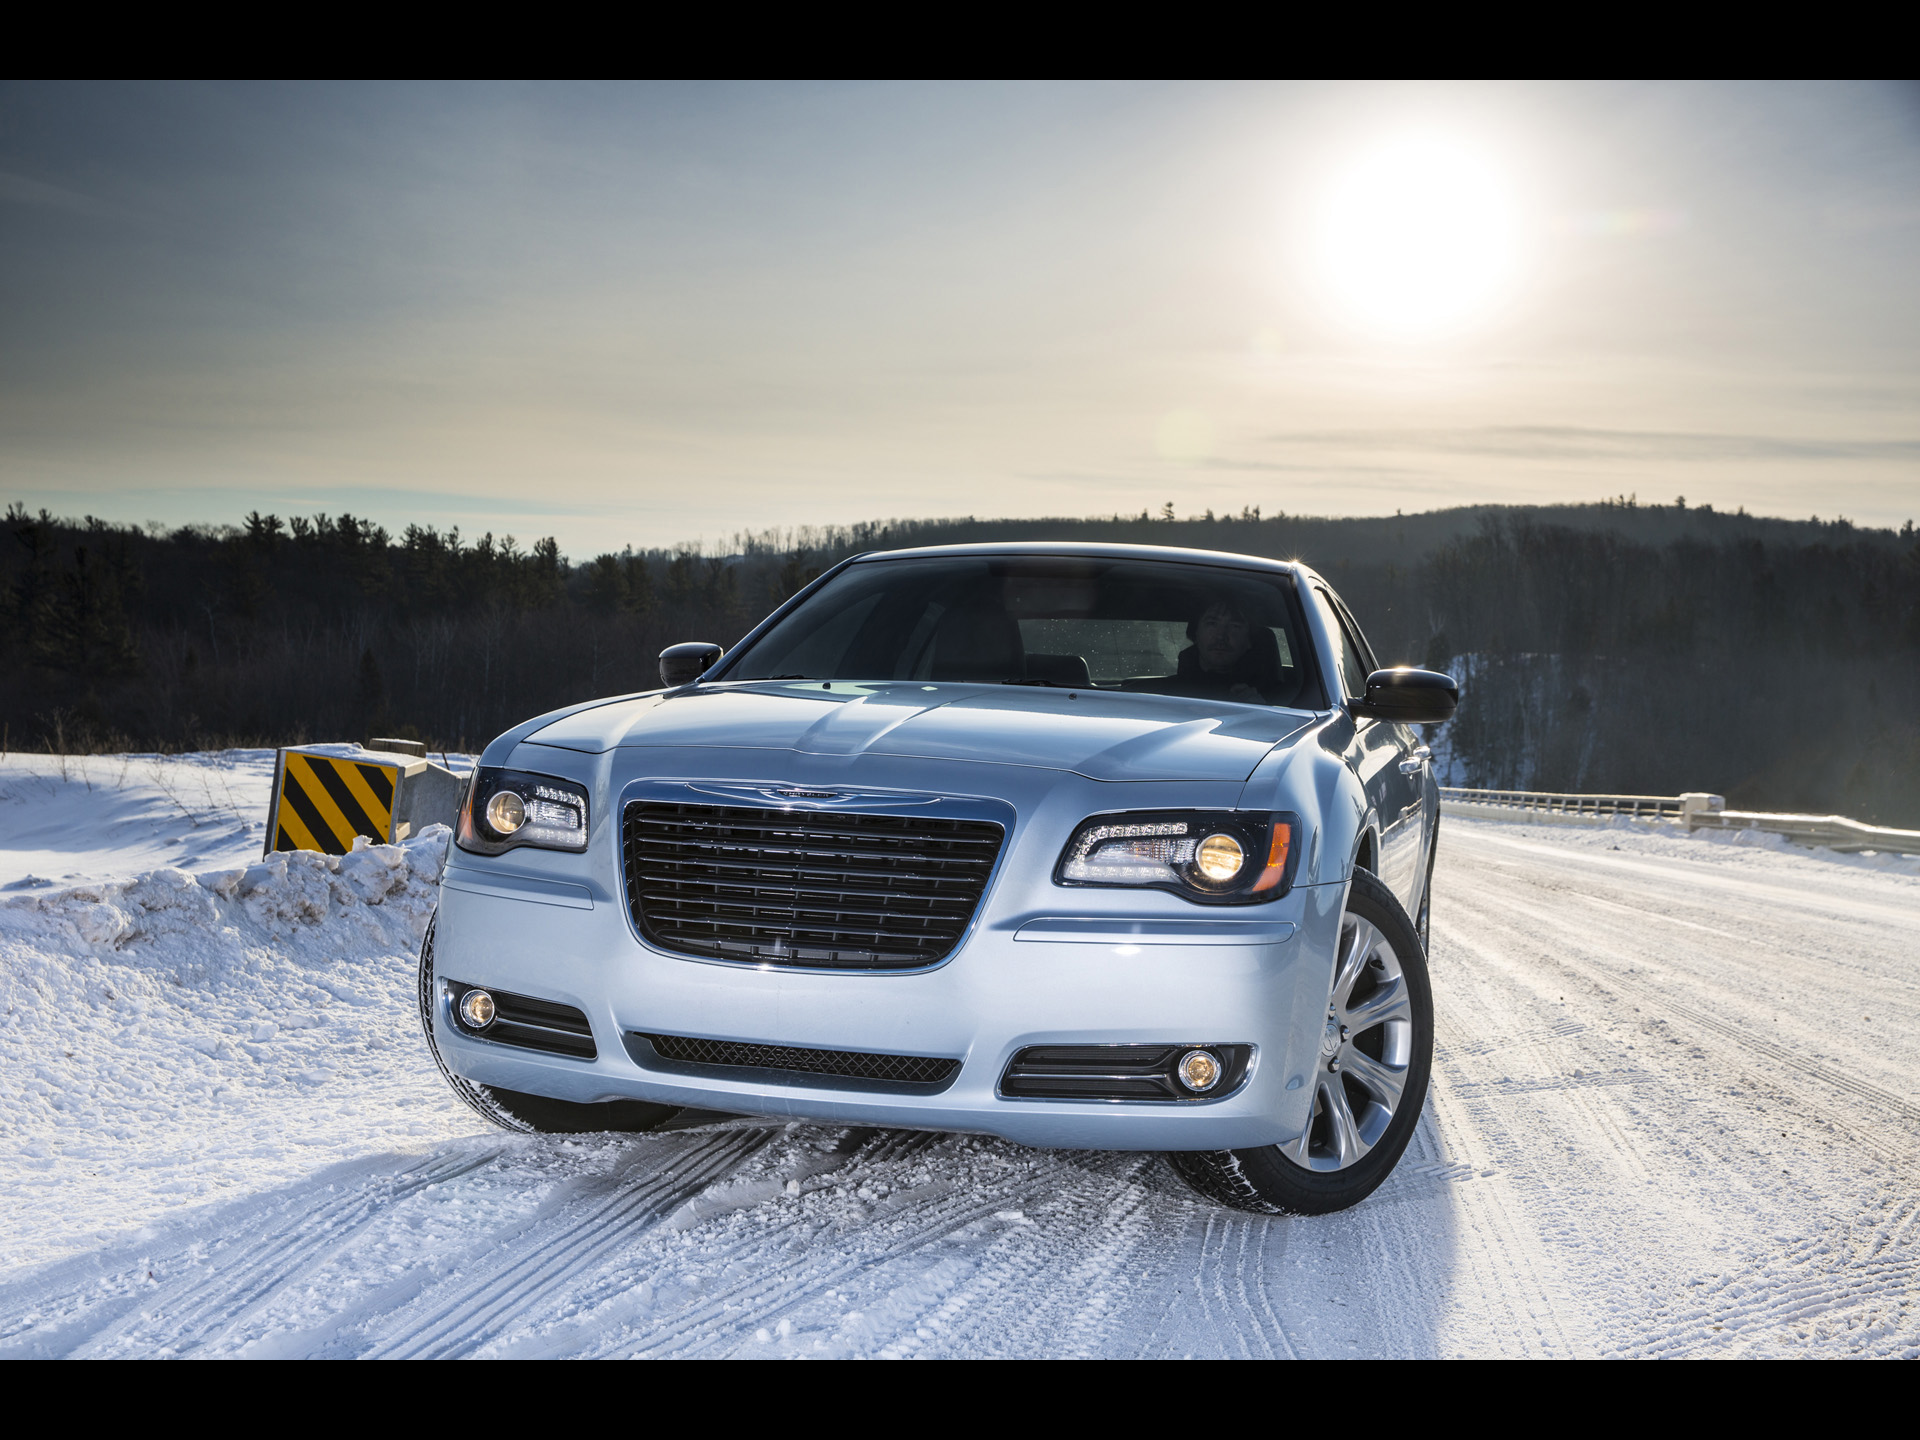 click to free download the wallpaper--Images of Super Car, Chrysler 300 in Snow World, Both Are Purely Beautiful 1920X1440 free wallpaper download